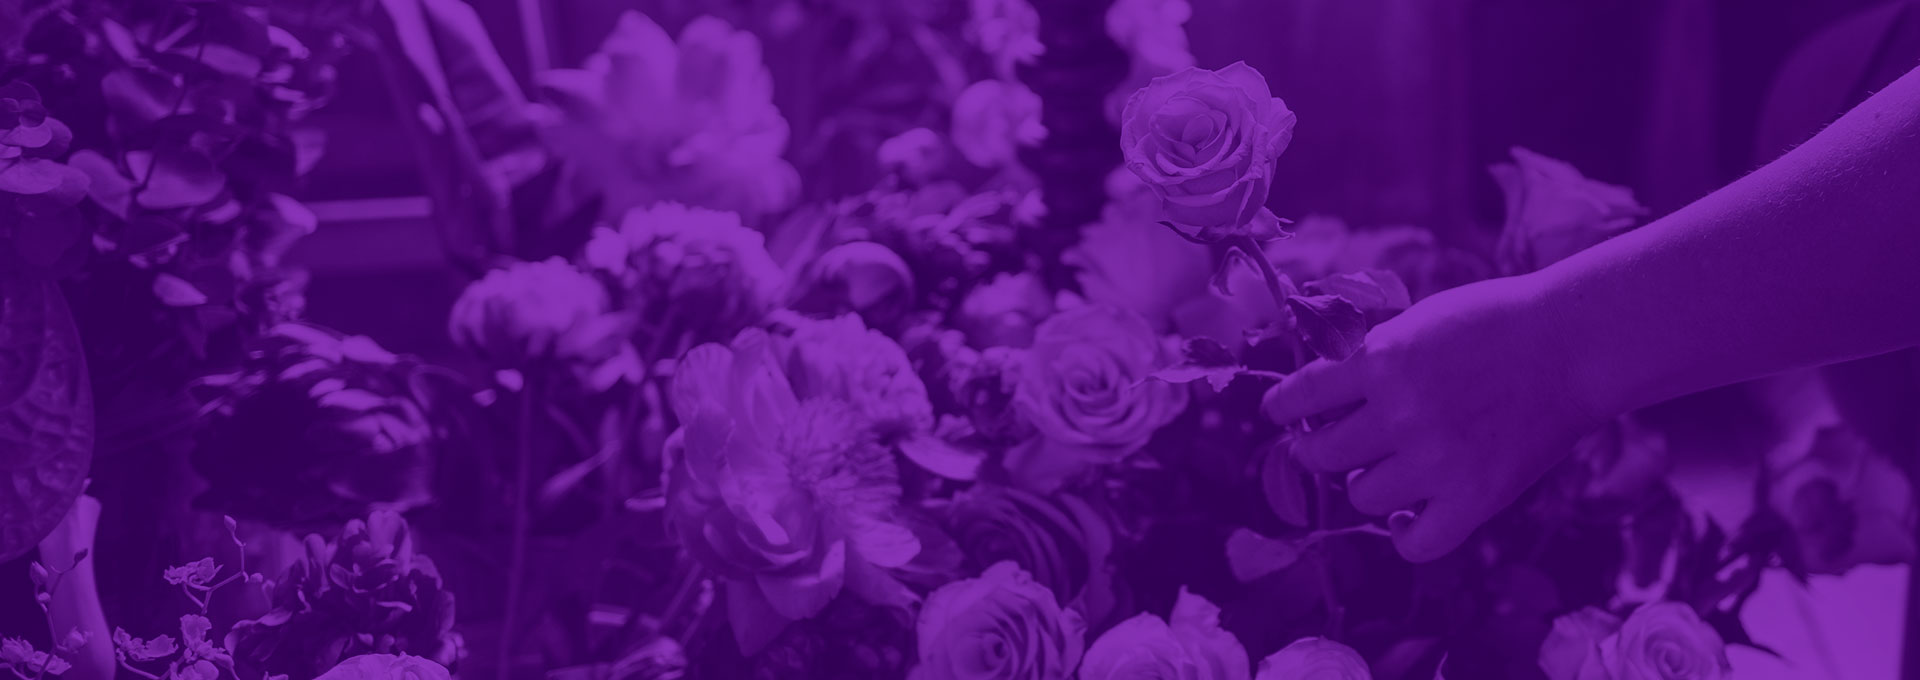 FTD Partners With Green Business Bureau To Help Florists With Sustainability